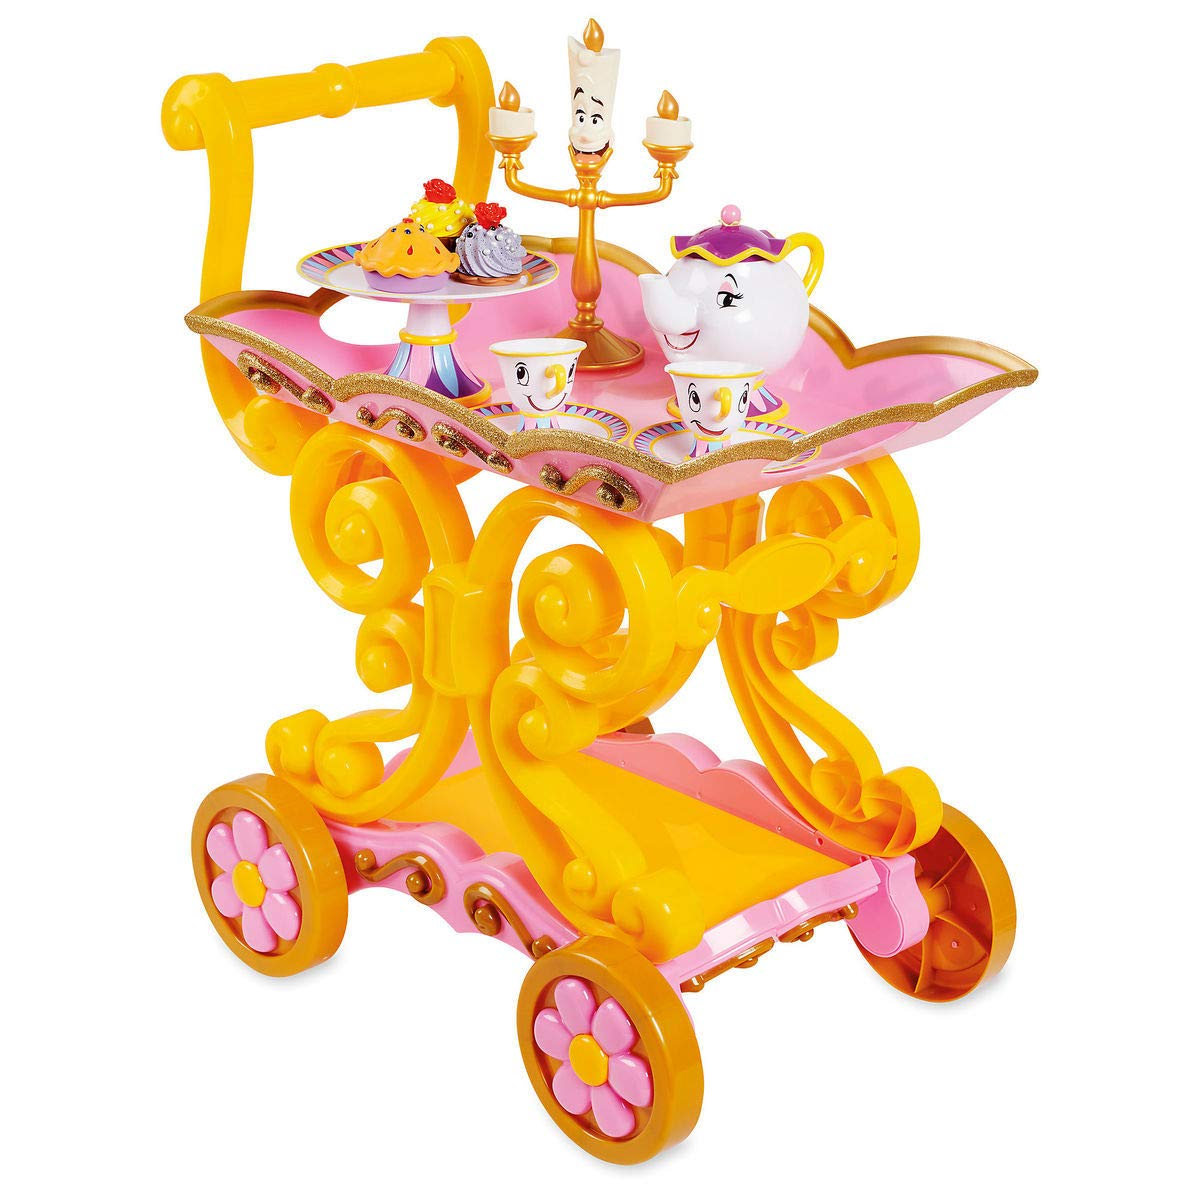 Disney (ディズニー) 2018 美女と野獣 ポット夫人とチップ 歌うティーカートプレイセット Beauty and the Beast ''Be Our Guest'' Singing Tea Cart Play Set  [並行輸入品]   B07KFR3RVP